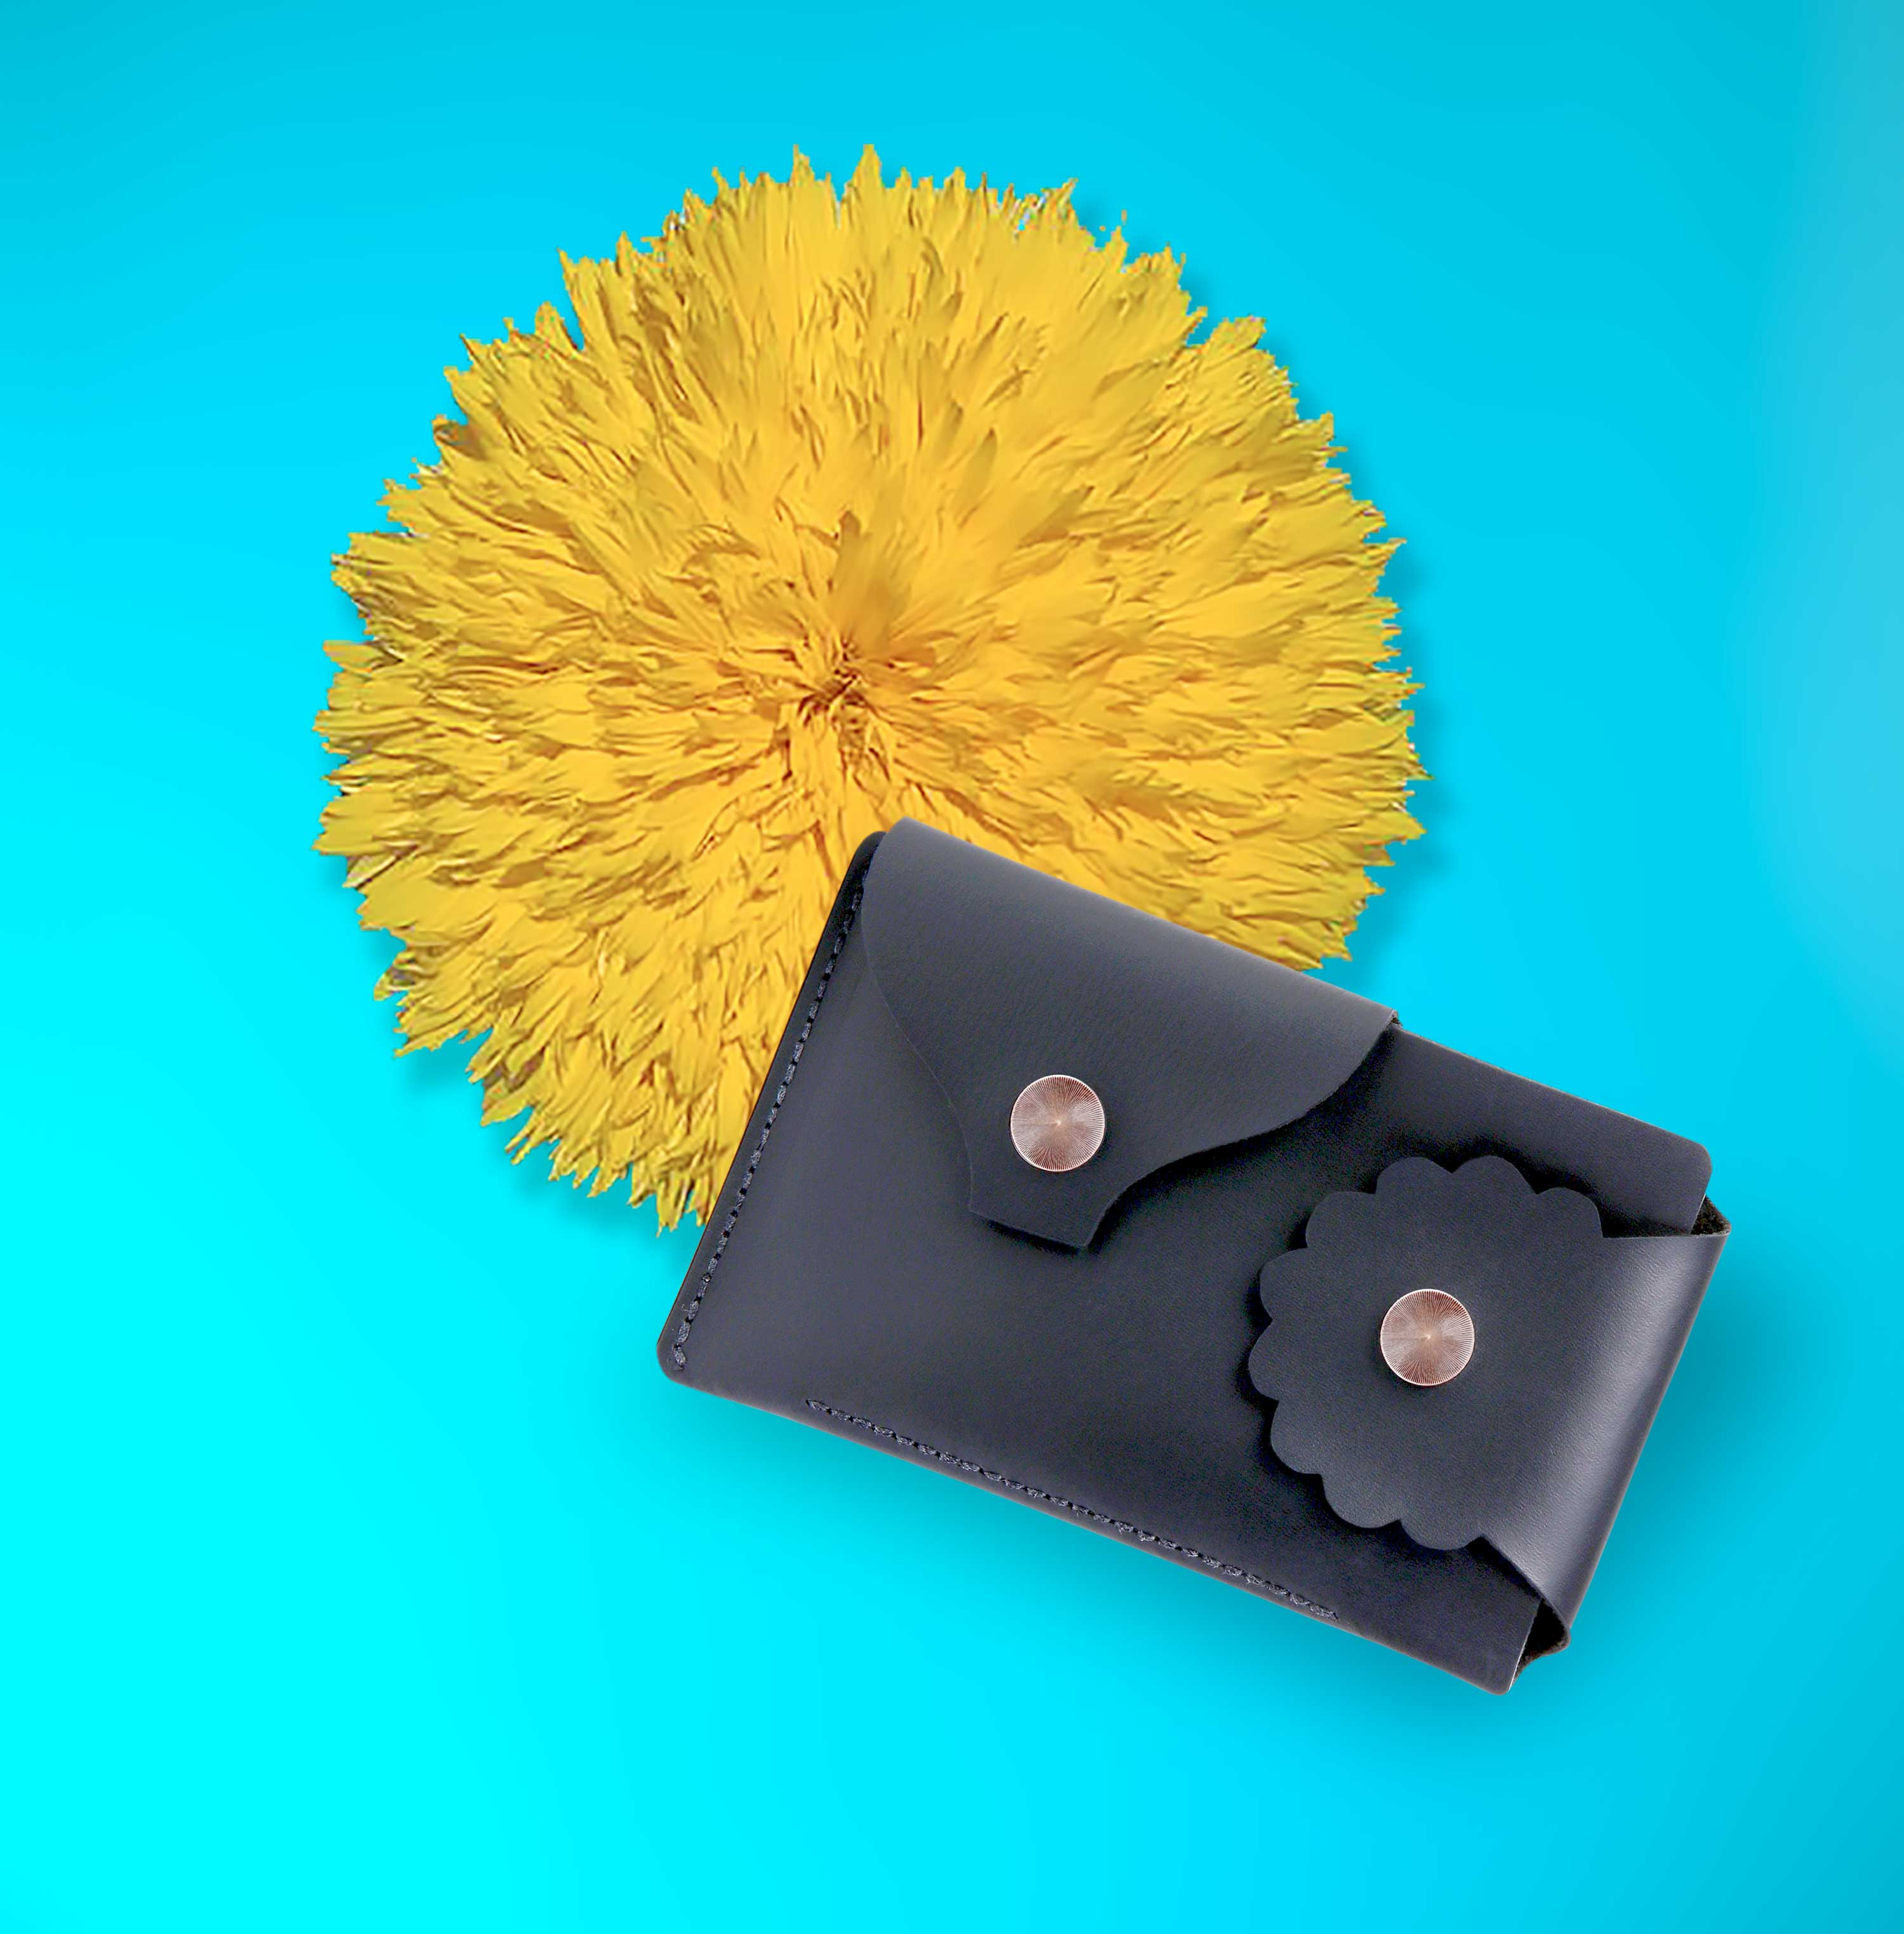 Marrs Makers Matte Black Leather Wallet. Bright turquoise background color with large sunflower in this product shot.